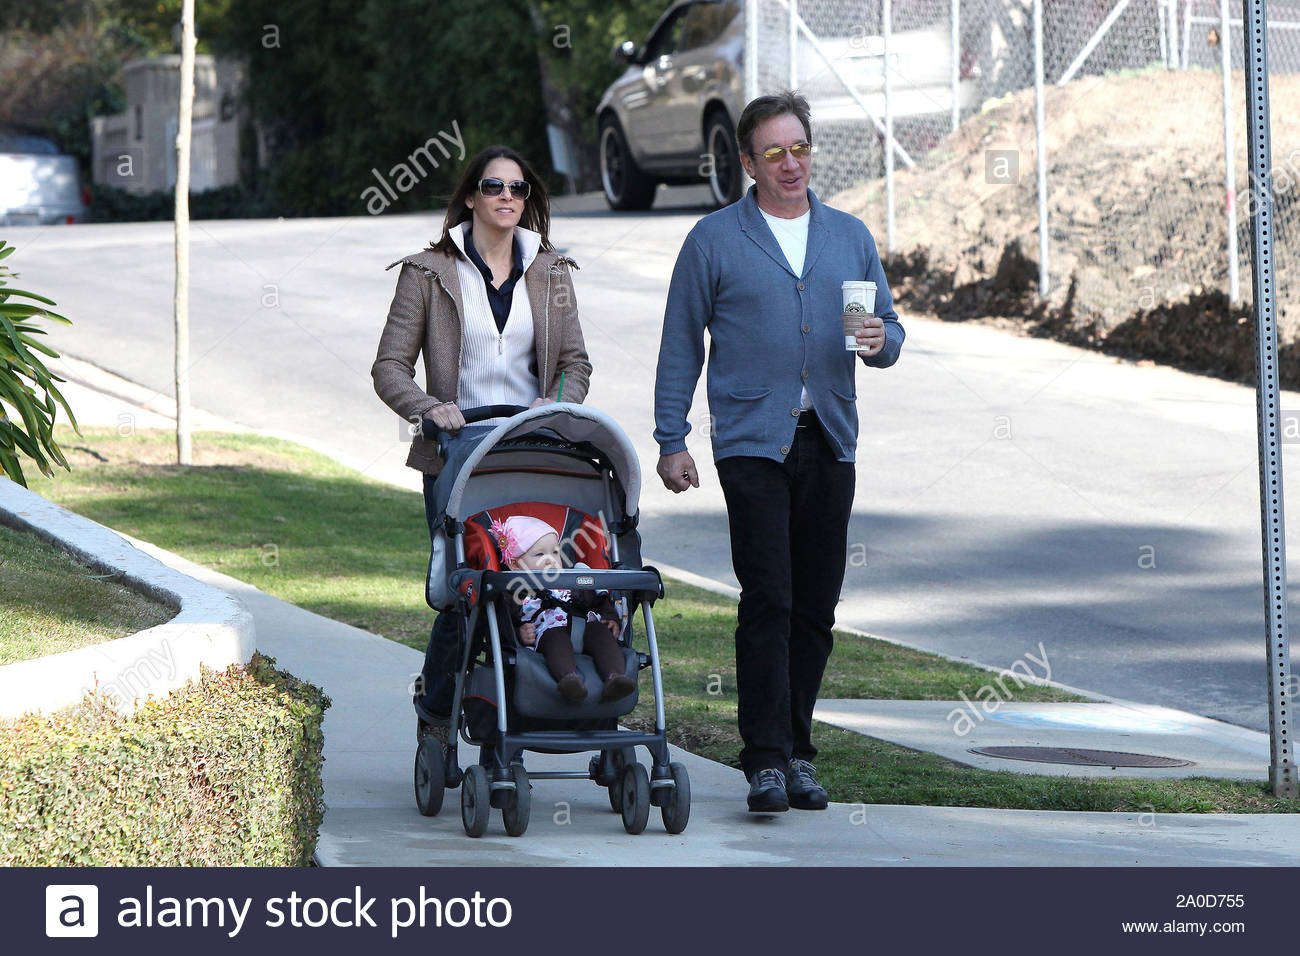 Toluca Lake Ca Funnyman Tim Allen And Wife Jane Hajduk Take Their Adorable 10 Month Old Here are some facts about her https www alamy com toluca lake ca funnyman tim allen and wife jane hajduk take their adorable 10 month old daughter elizabeth for a morning walk around their los angeles home tim and jane welcomed elizabeth last march their first child together second for tim who has a daughter named katherine with first wife laura deibel gsi media january 31 2010 image327288001 html